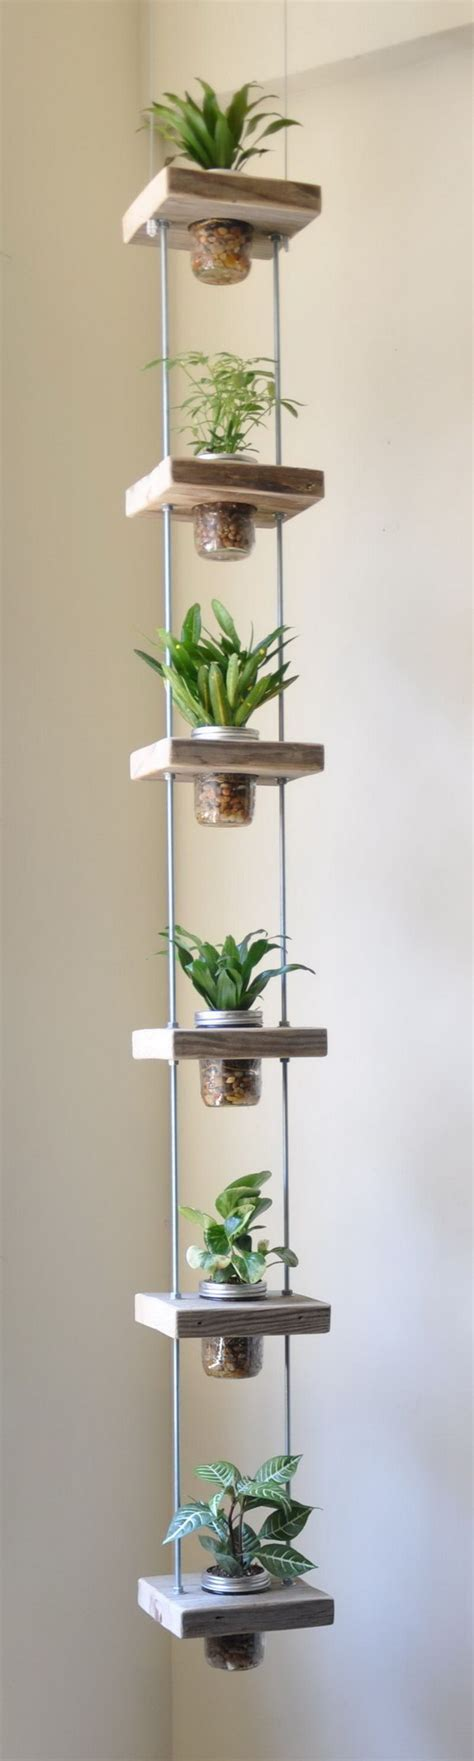 Vertical Garden Indoor Diy 25 Cool Diy Indoor Herb Garden Ideas Hative